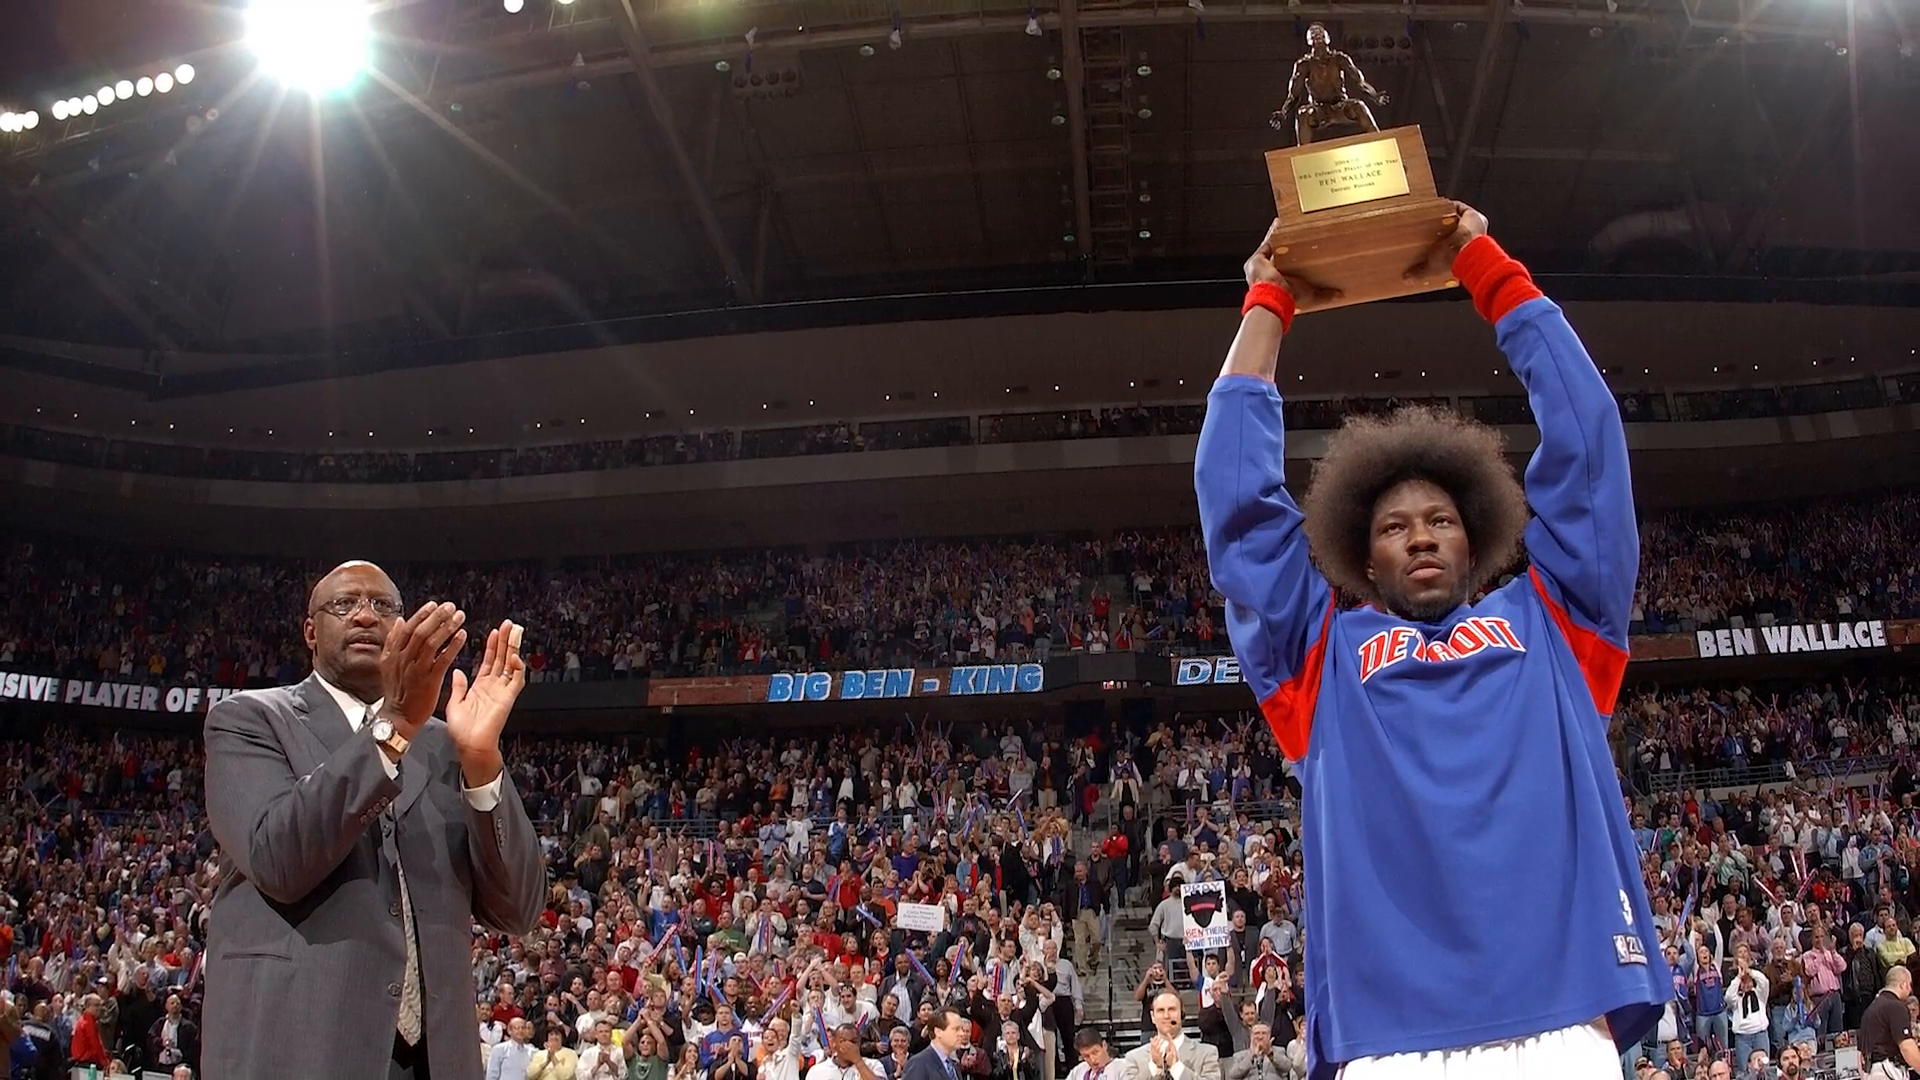 Ben Wallace HOF 2021 Induction | Coming to Detroit